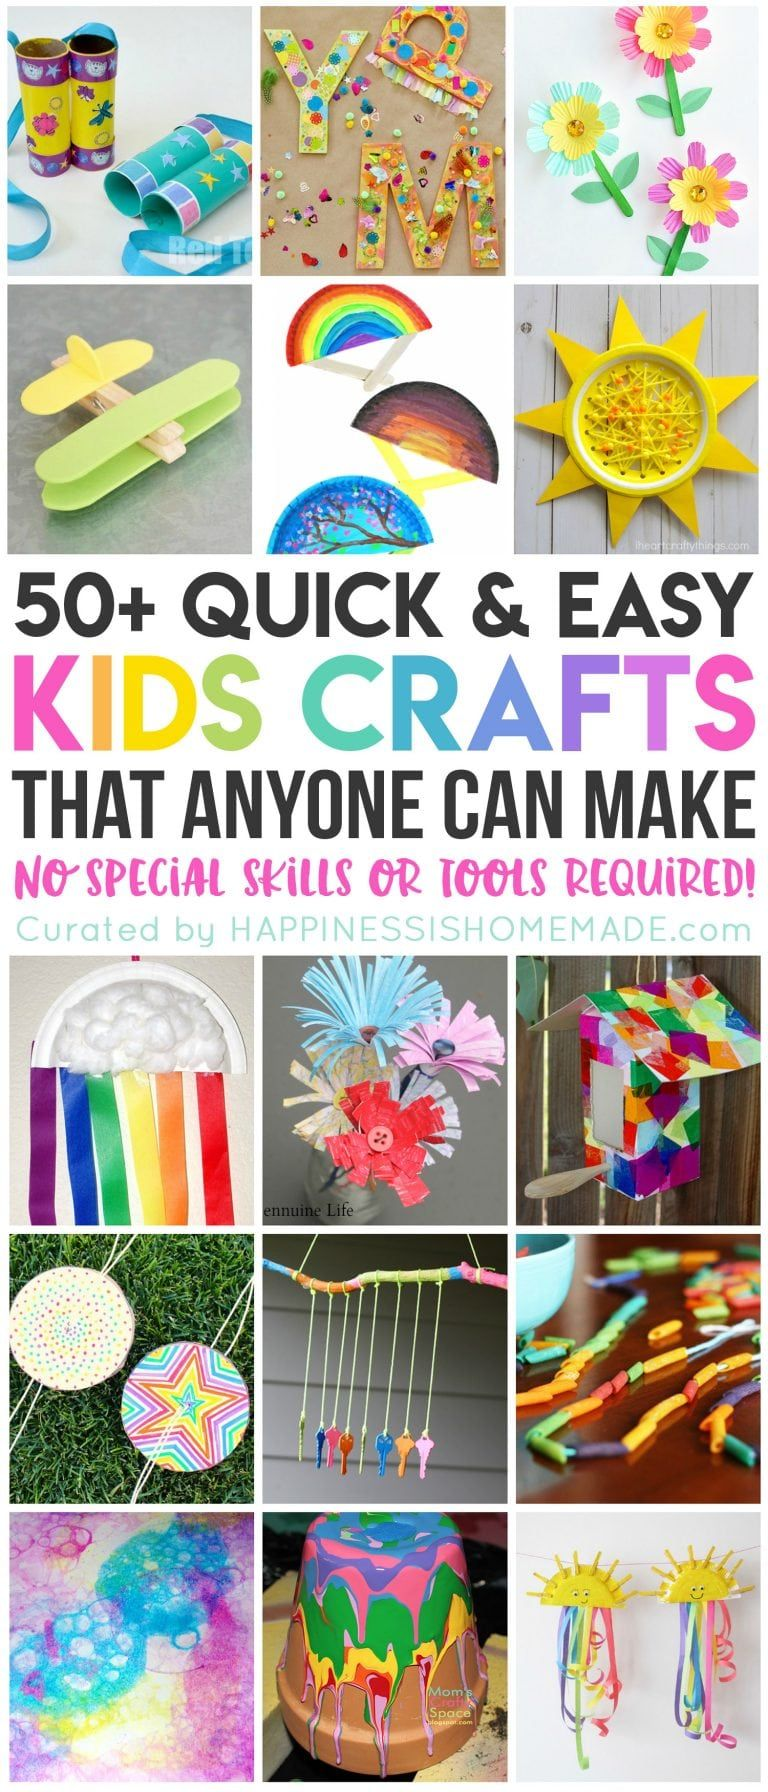 These 50+ quick and easy kids crafts can be made in under